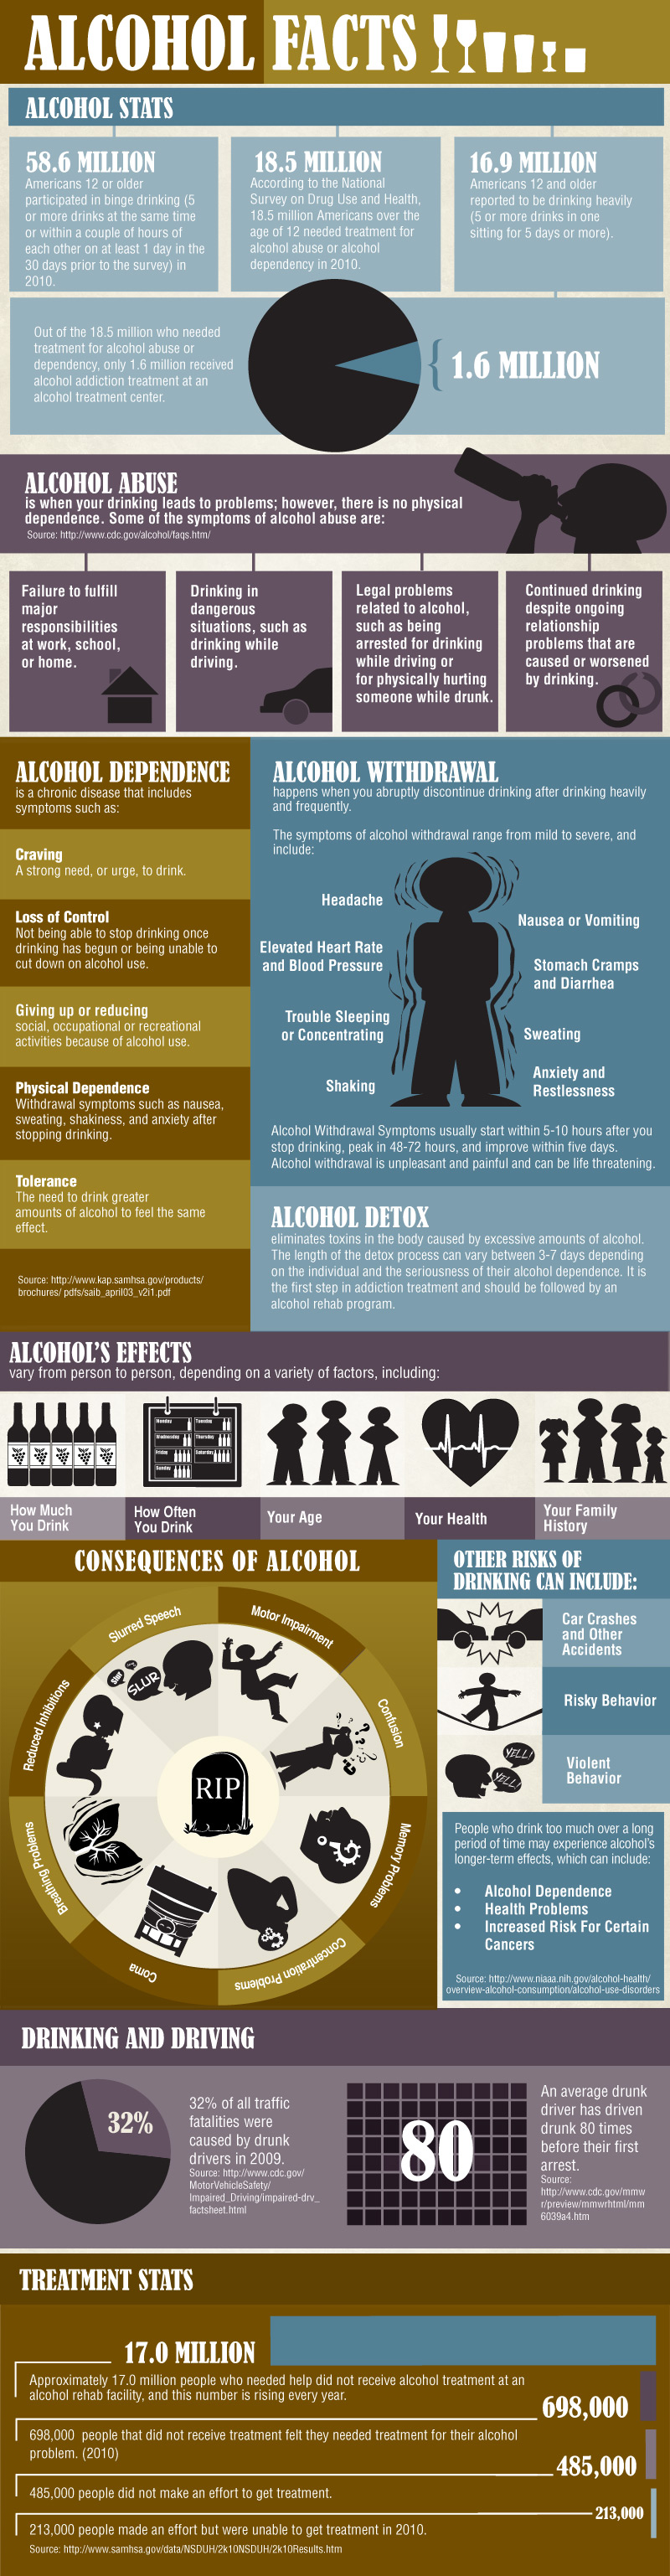 the consequences of alcohol abuse and dependence The social and economic problems of alcohol use not only affect those who drink but also those around them, and society as a whole.